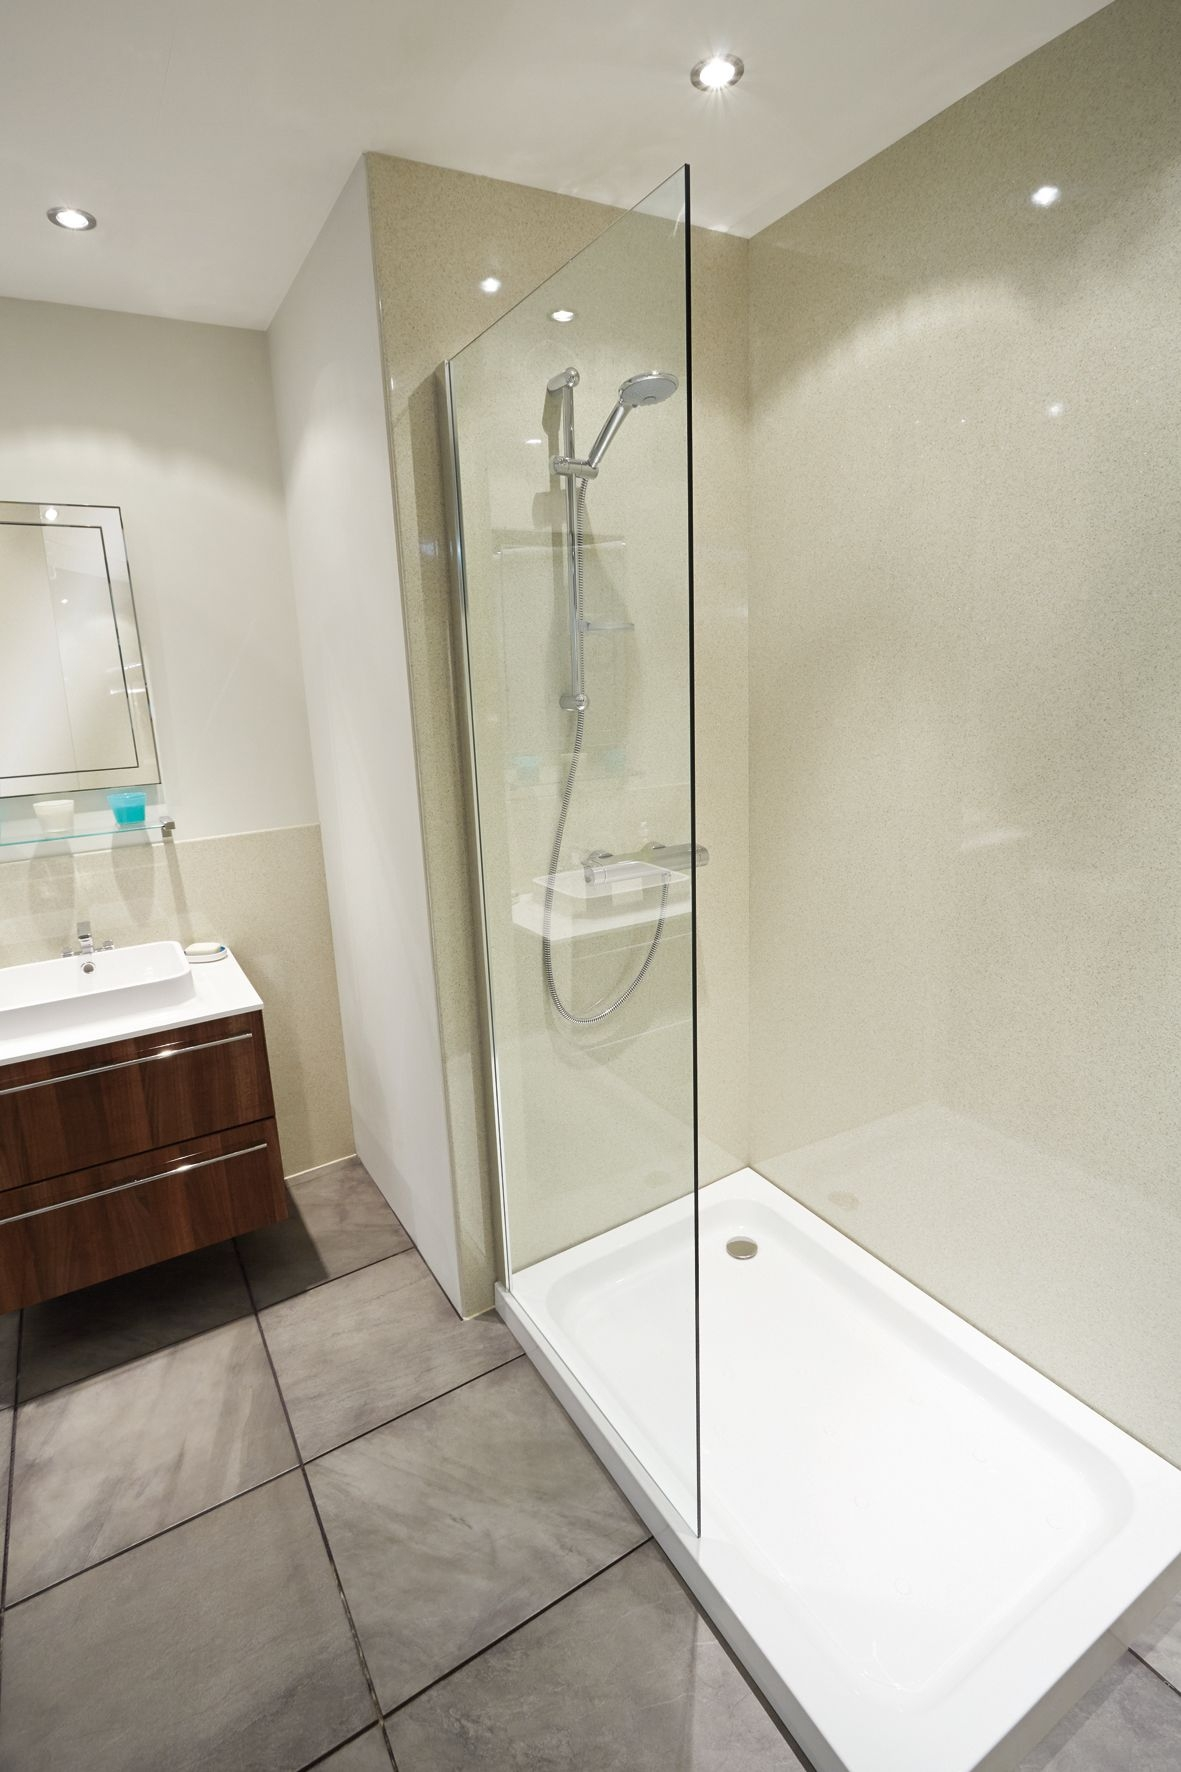 nuance laminate panelling is an ideal alternative to tiling there